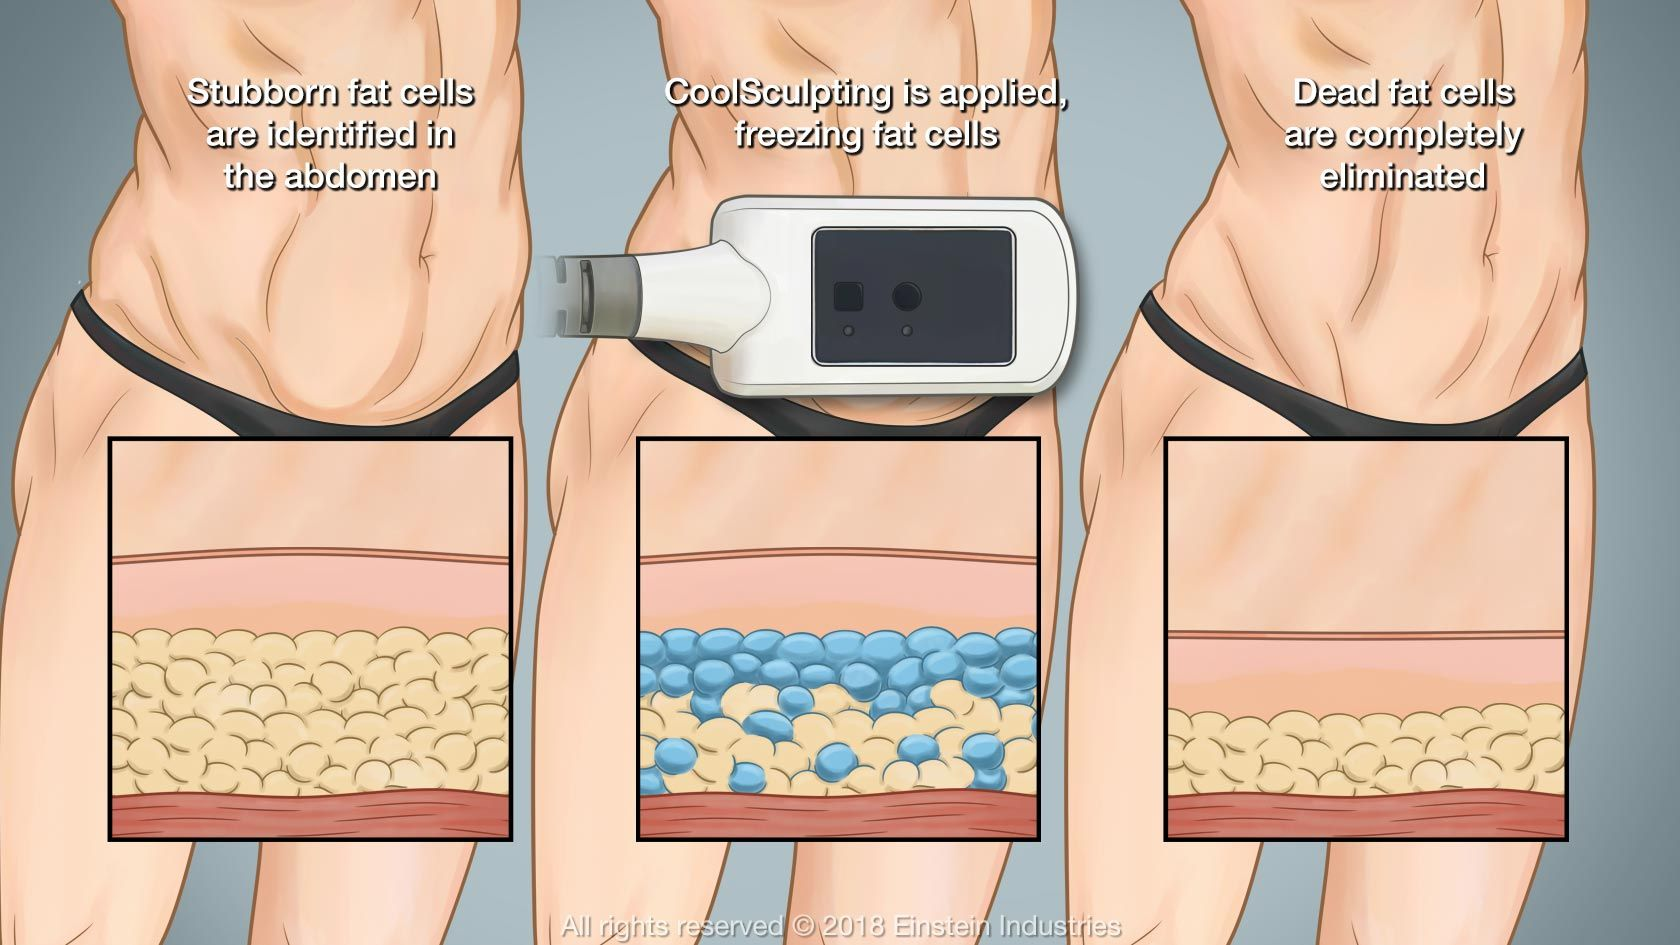 CoolSculpting® - Greenville, SC - Back to 30™